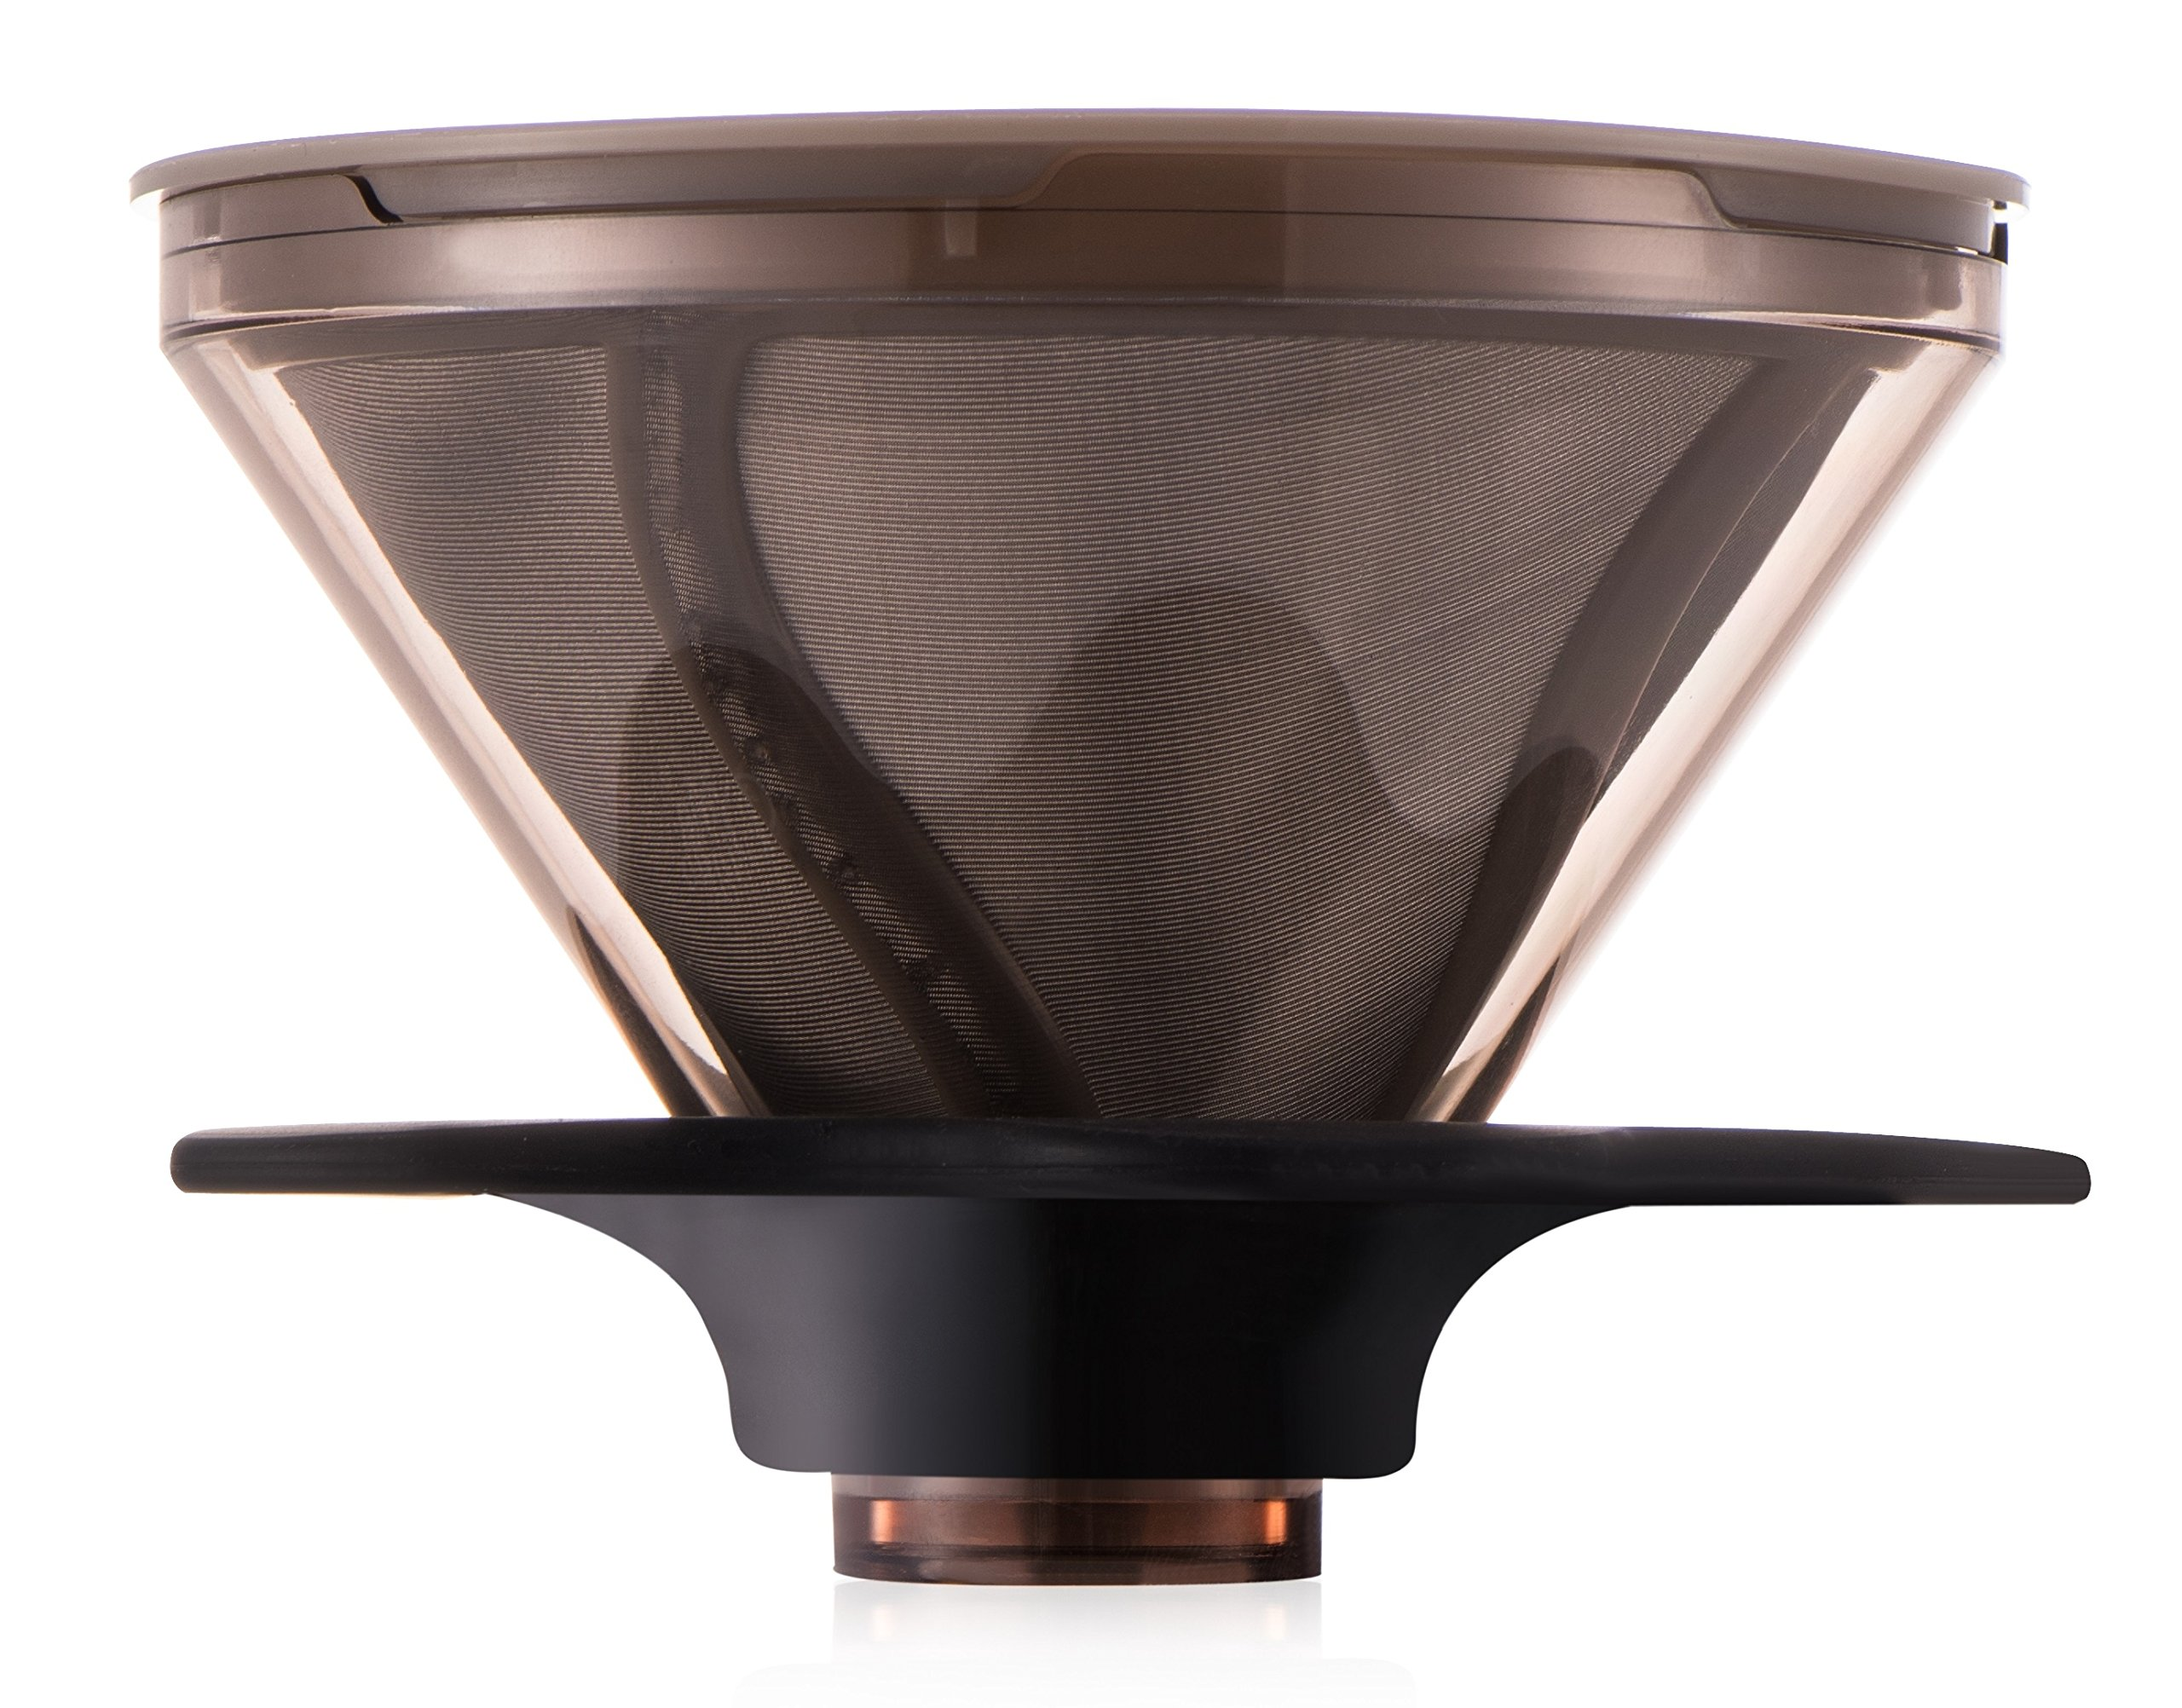 Diguo Clever Coffee Immersion Dripper with Paperless 18/8 Stainless Steel Permanent Filter, BPA-Free, Immersion Coffee and Tea, Making Good Coffee is Never Easier.